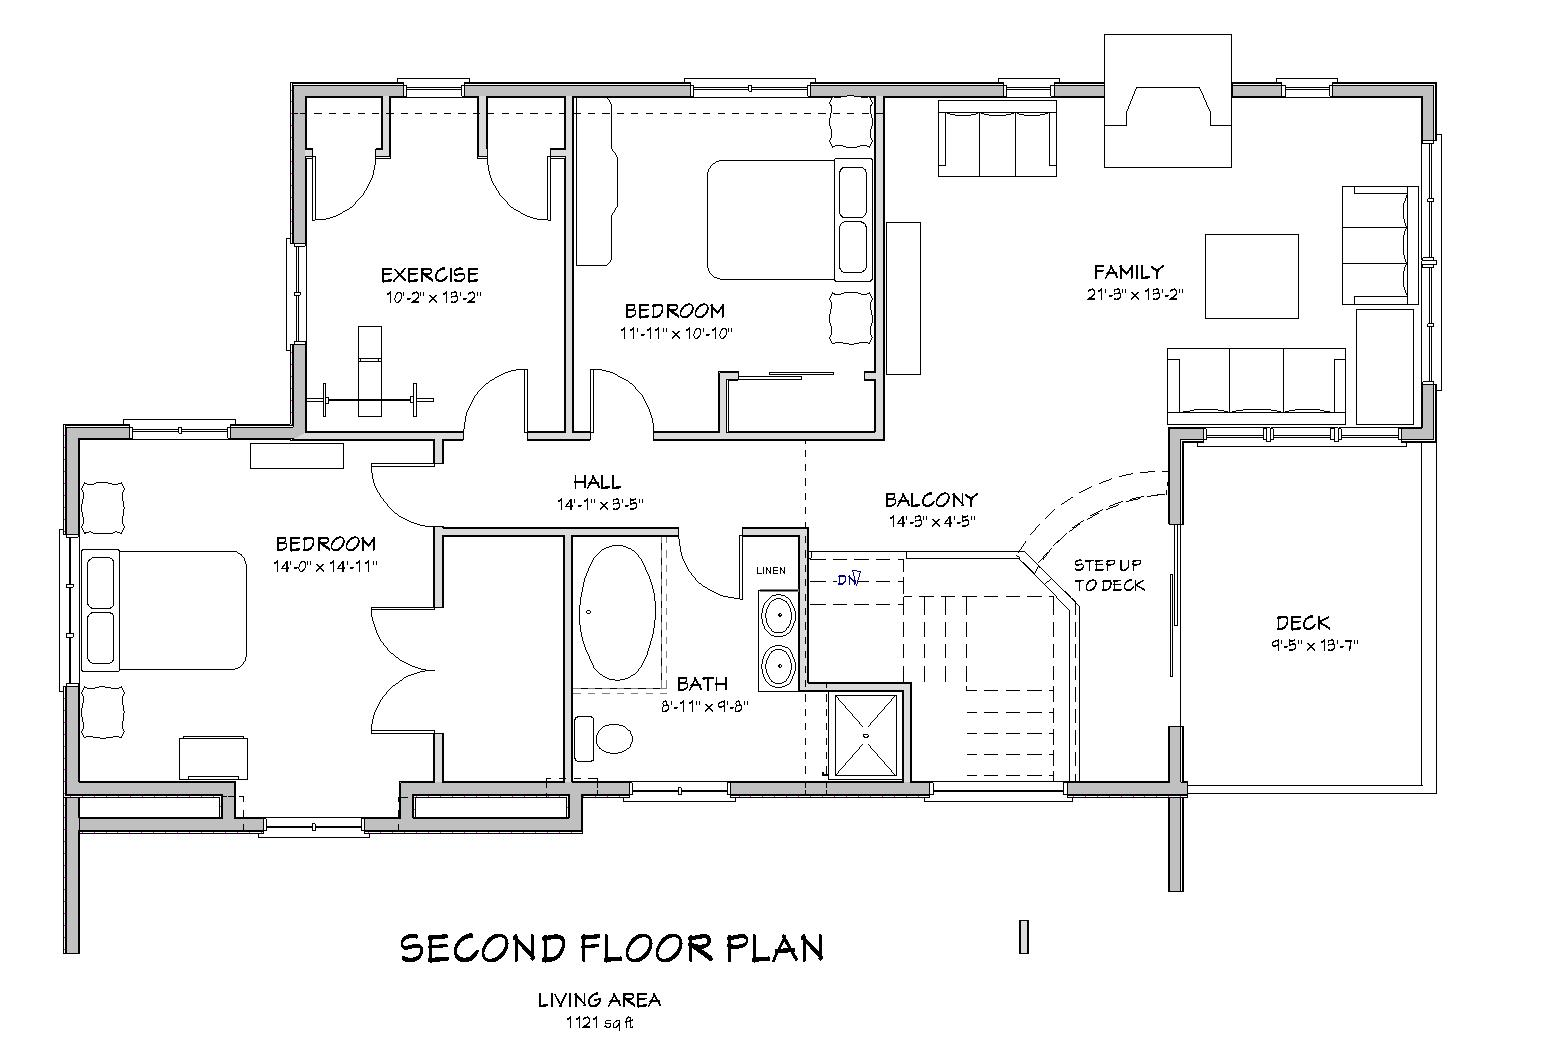 traditional 3 bedroom house plans photo - 2